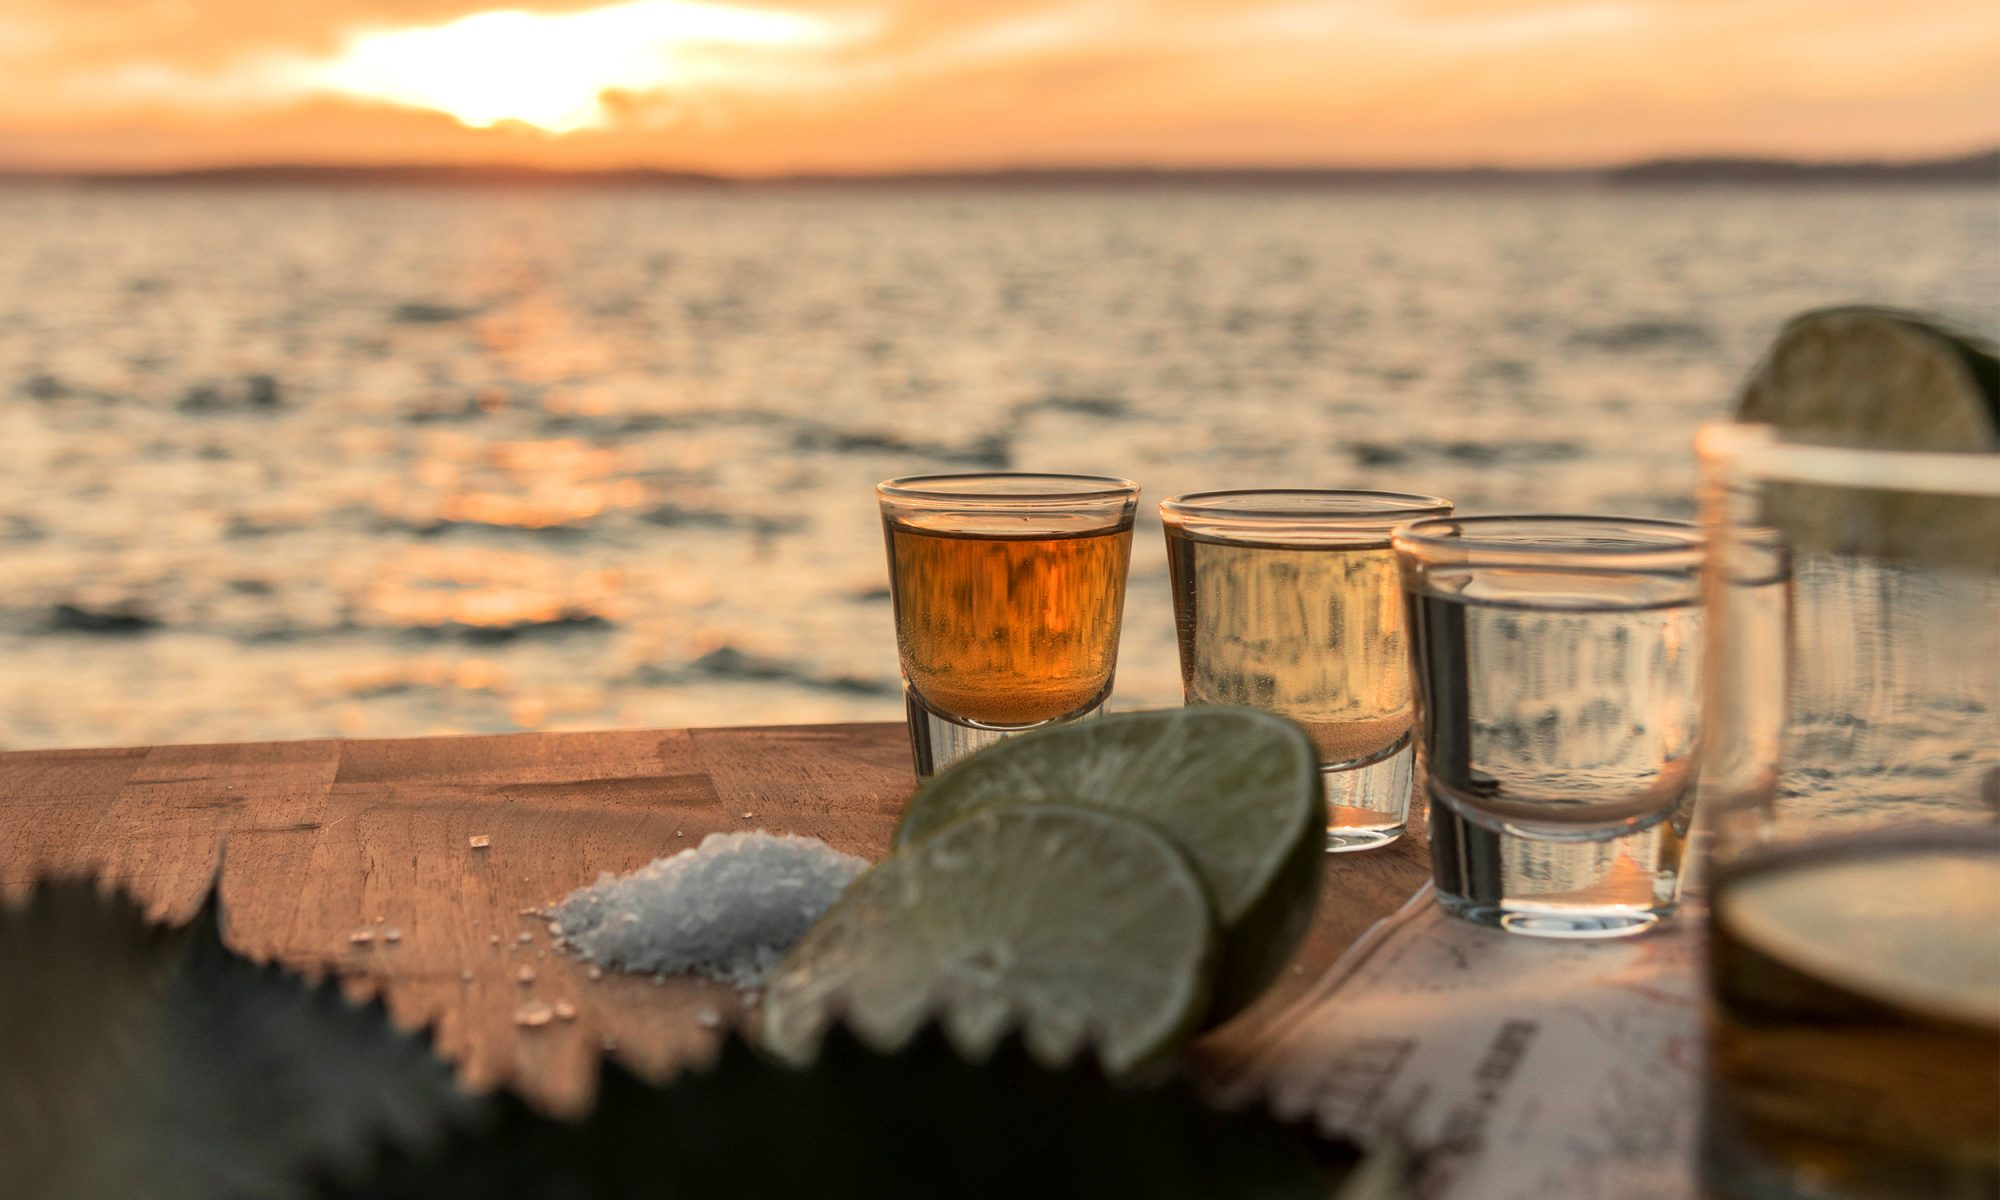 EC: It's Official: Tequila Causes the Worst Hangovers